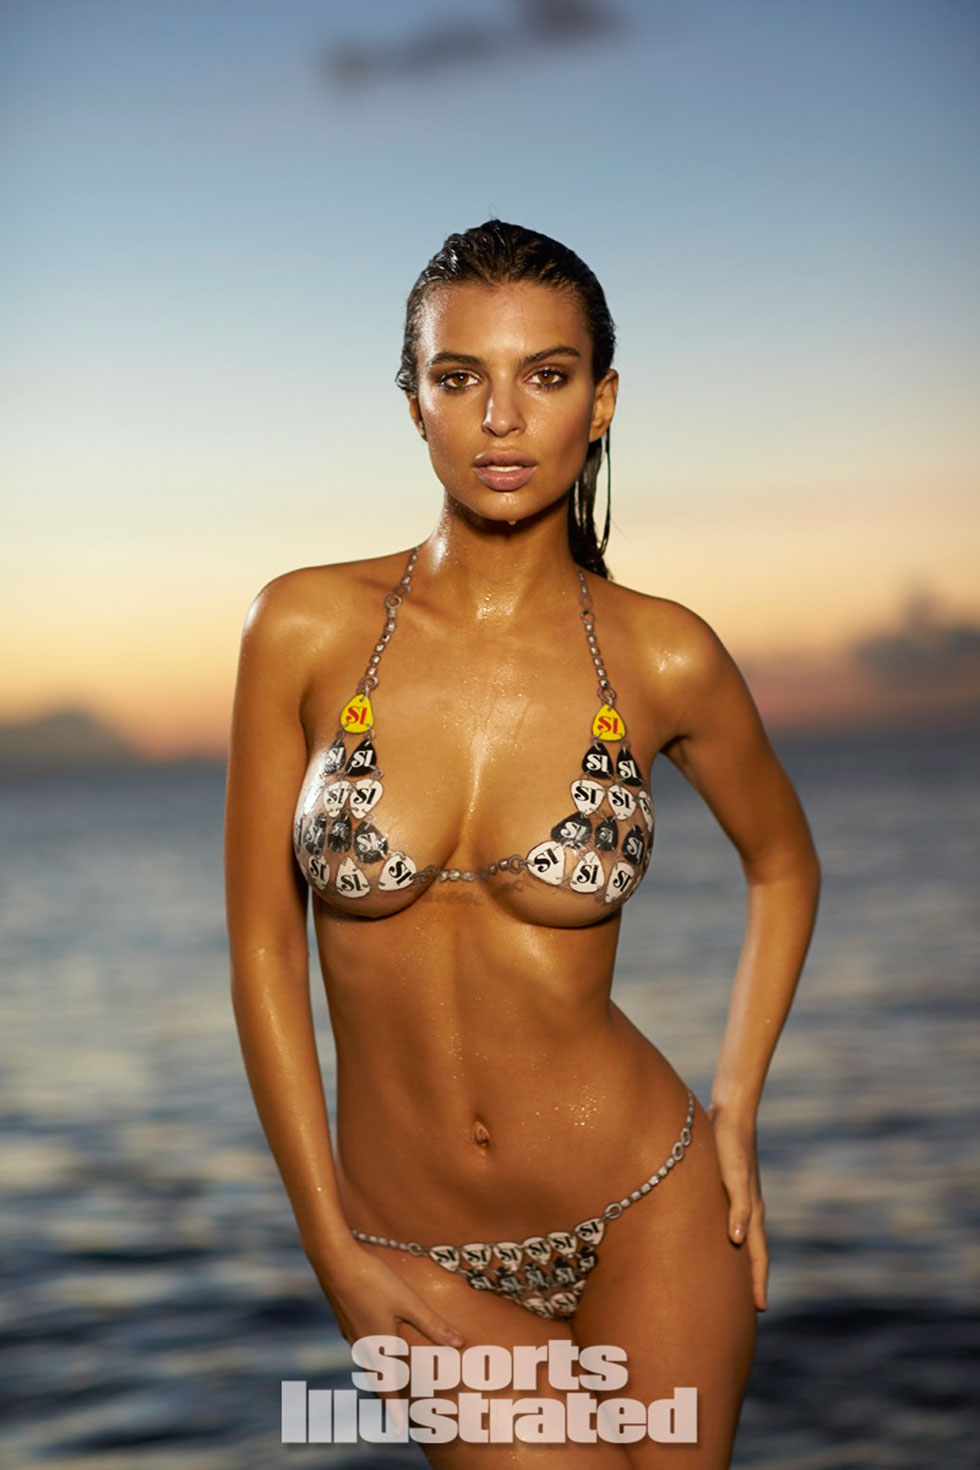 Emily-Ratajkowski-for-Sports-Illustrated-Swimsuit-Edition-2014_09